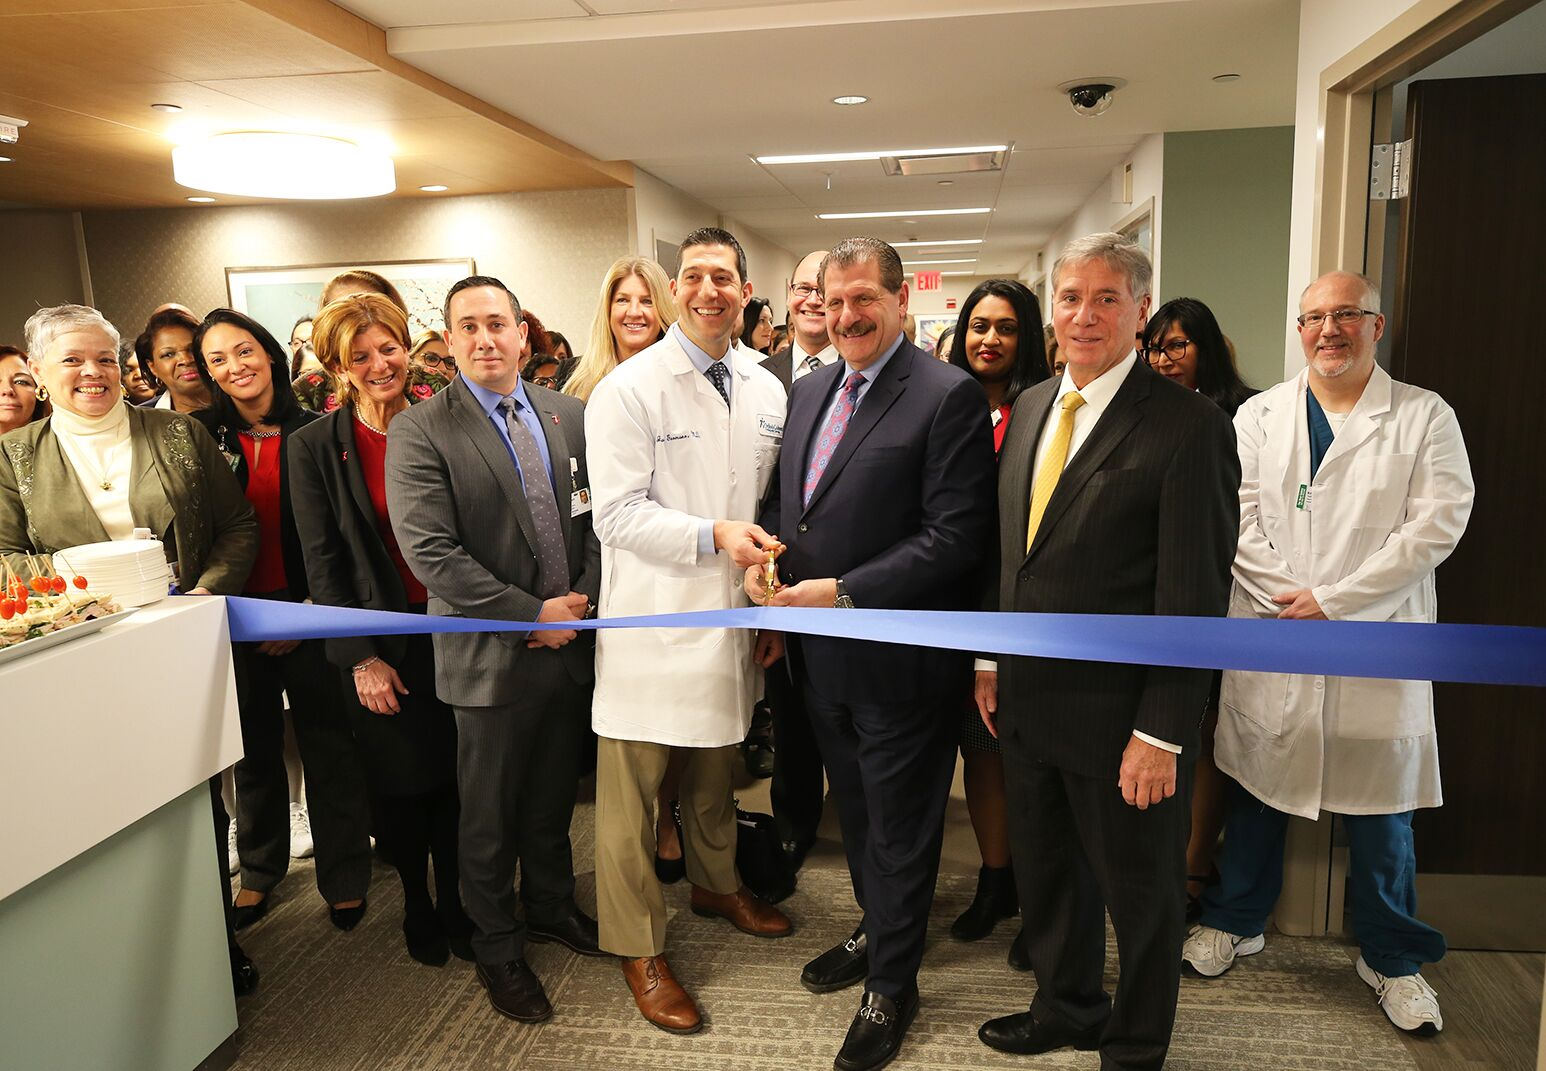 A ribbon cutting for the Orthopedic Hospital at LIJ Valley Stream.